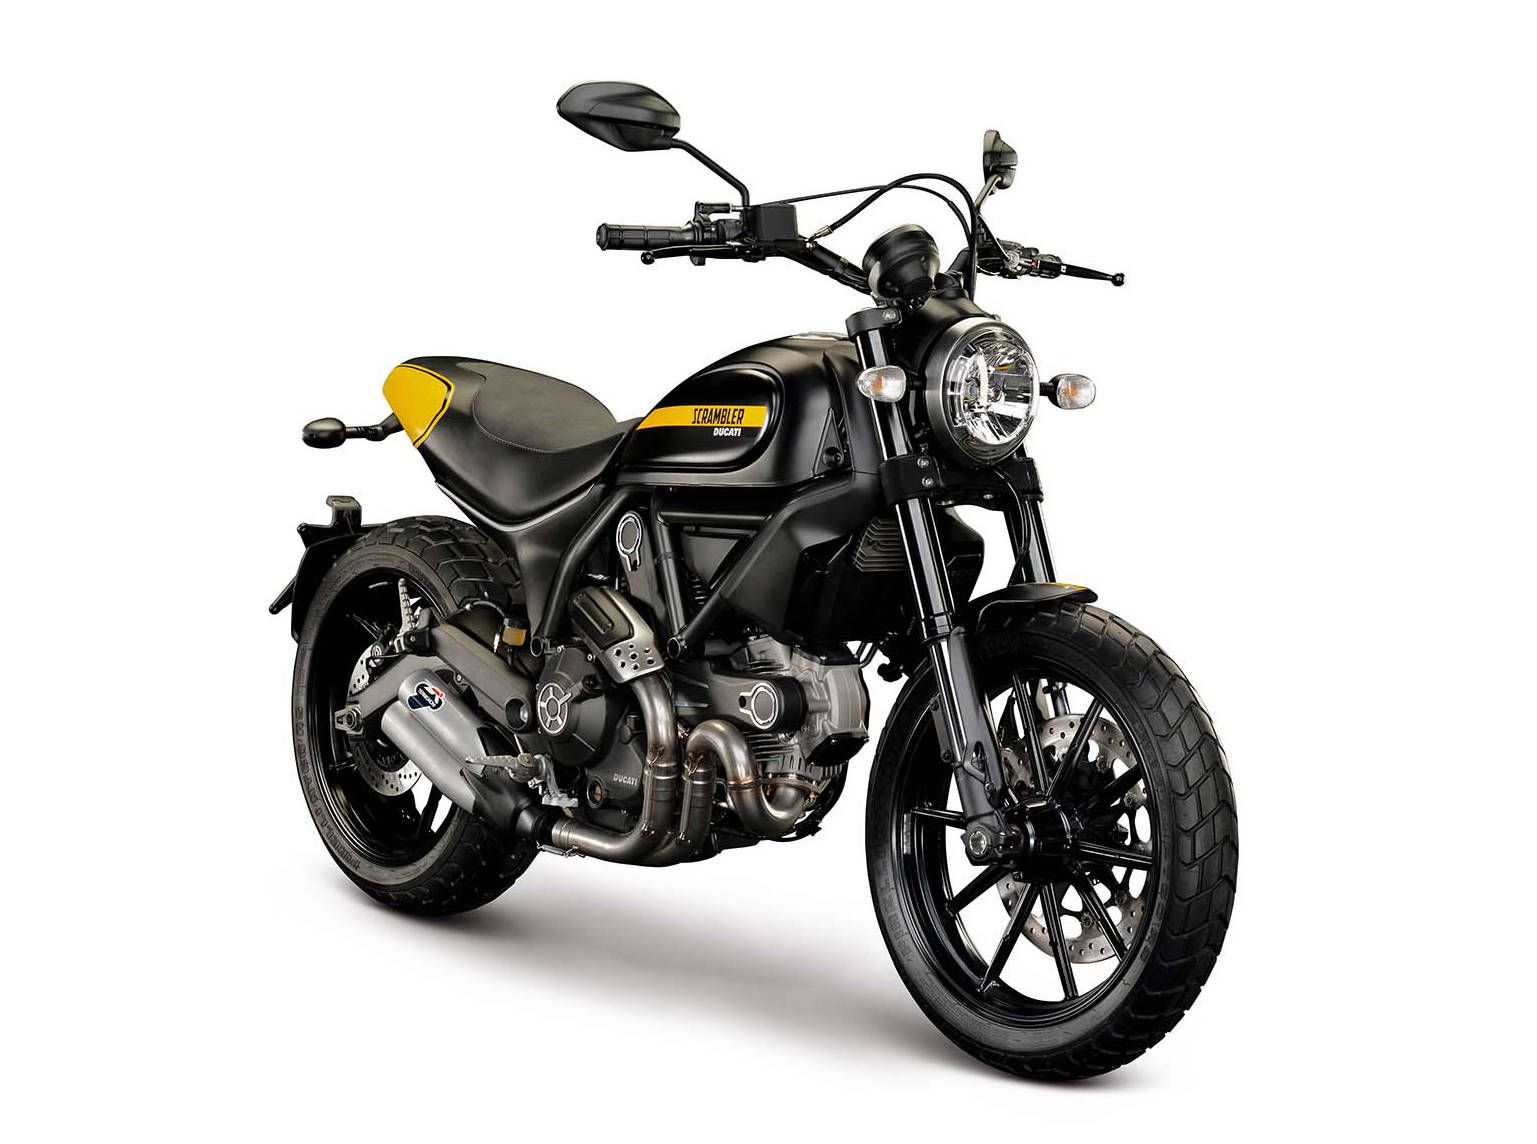 De Ducati Scrambler Full Throttle Is De Ruige Maar Net Zo